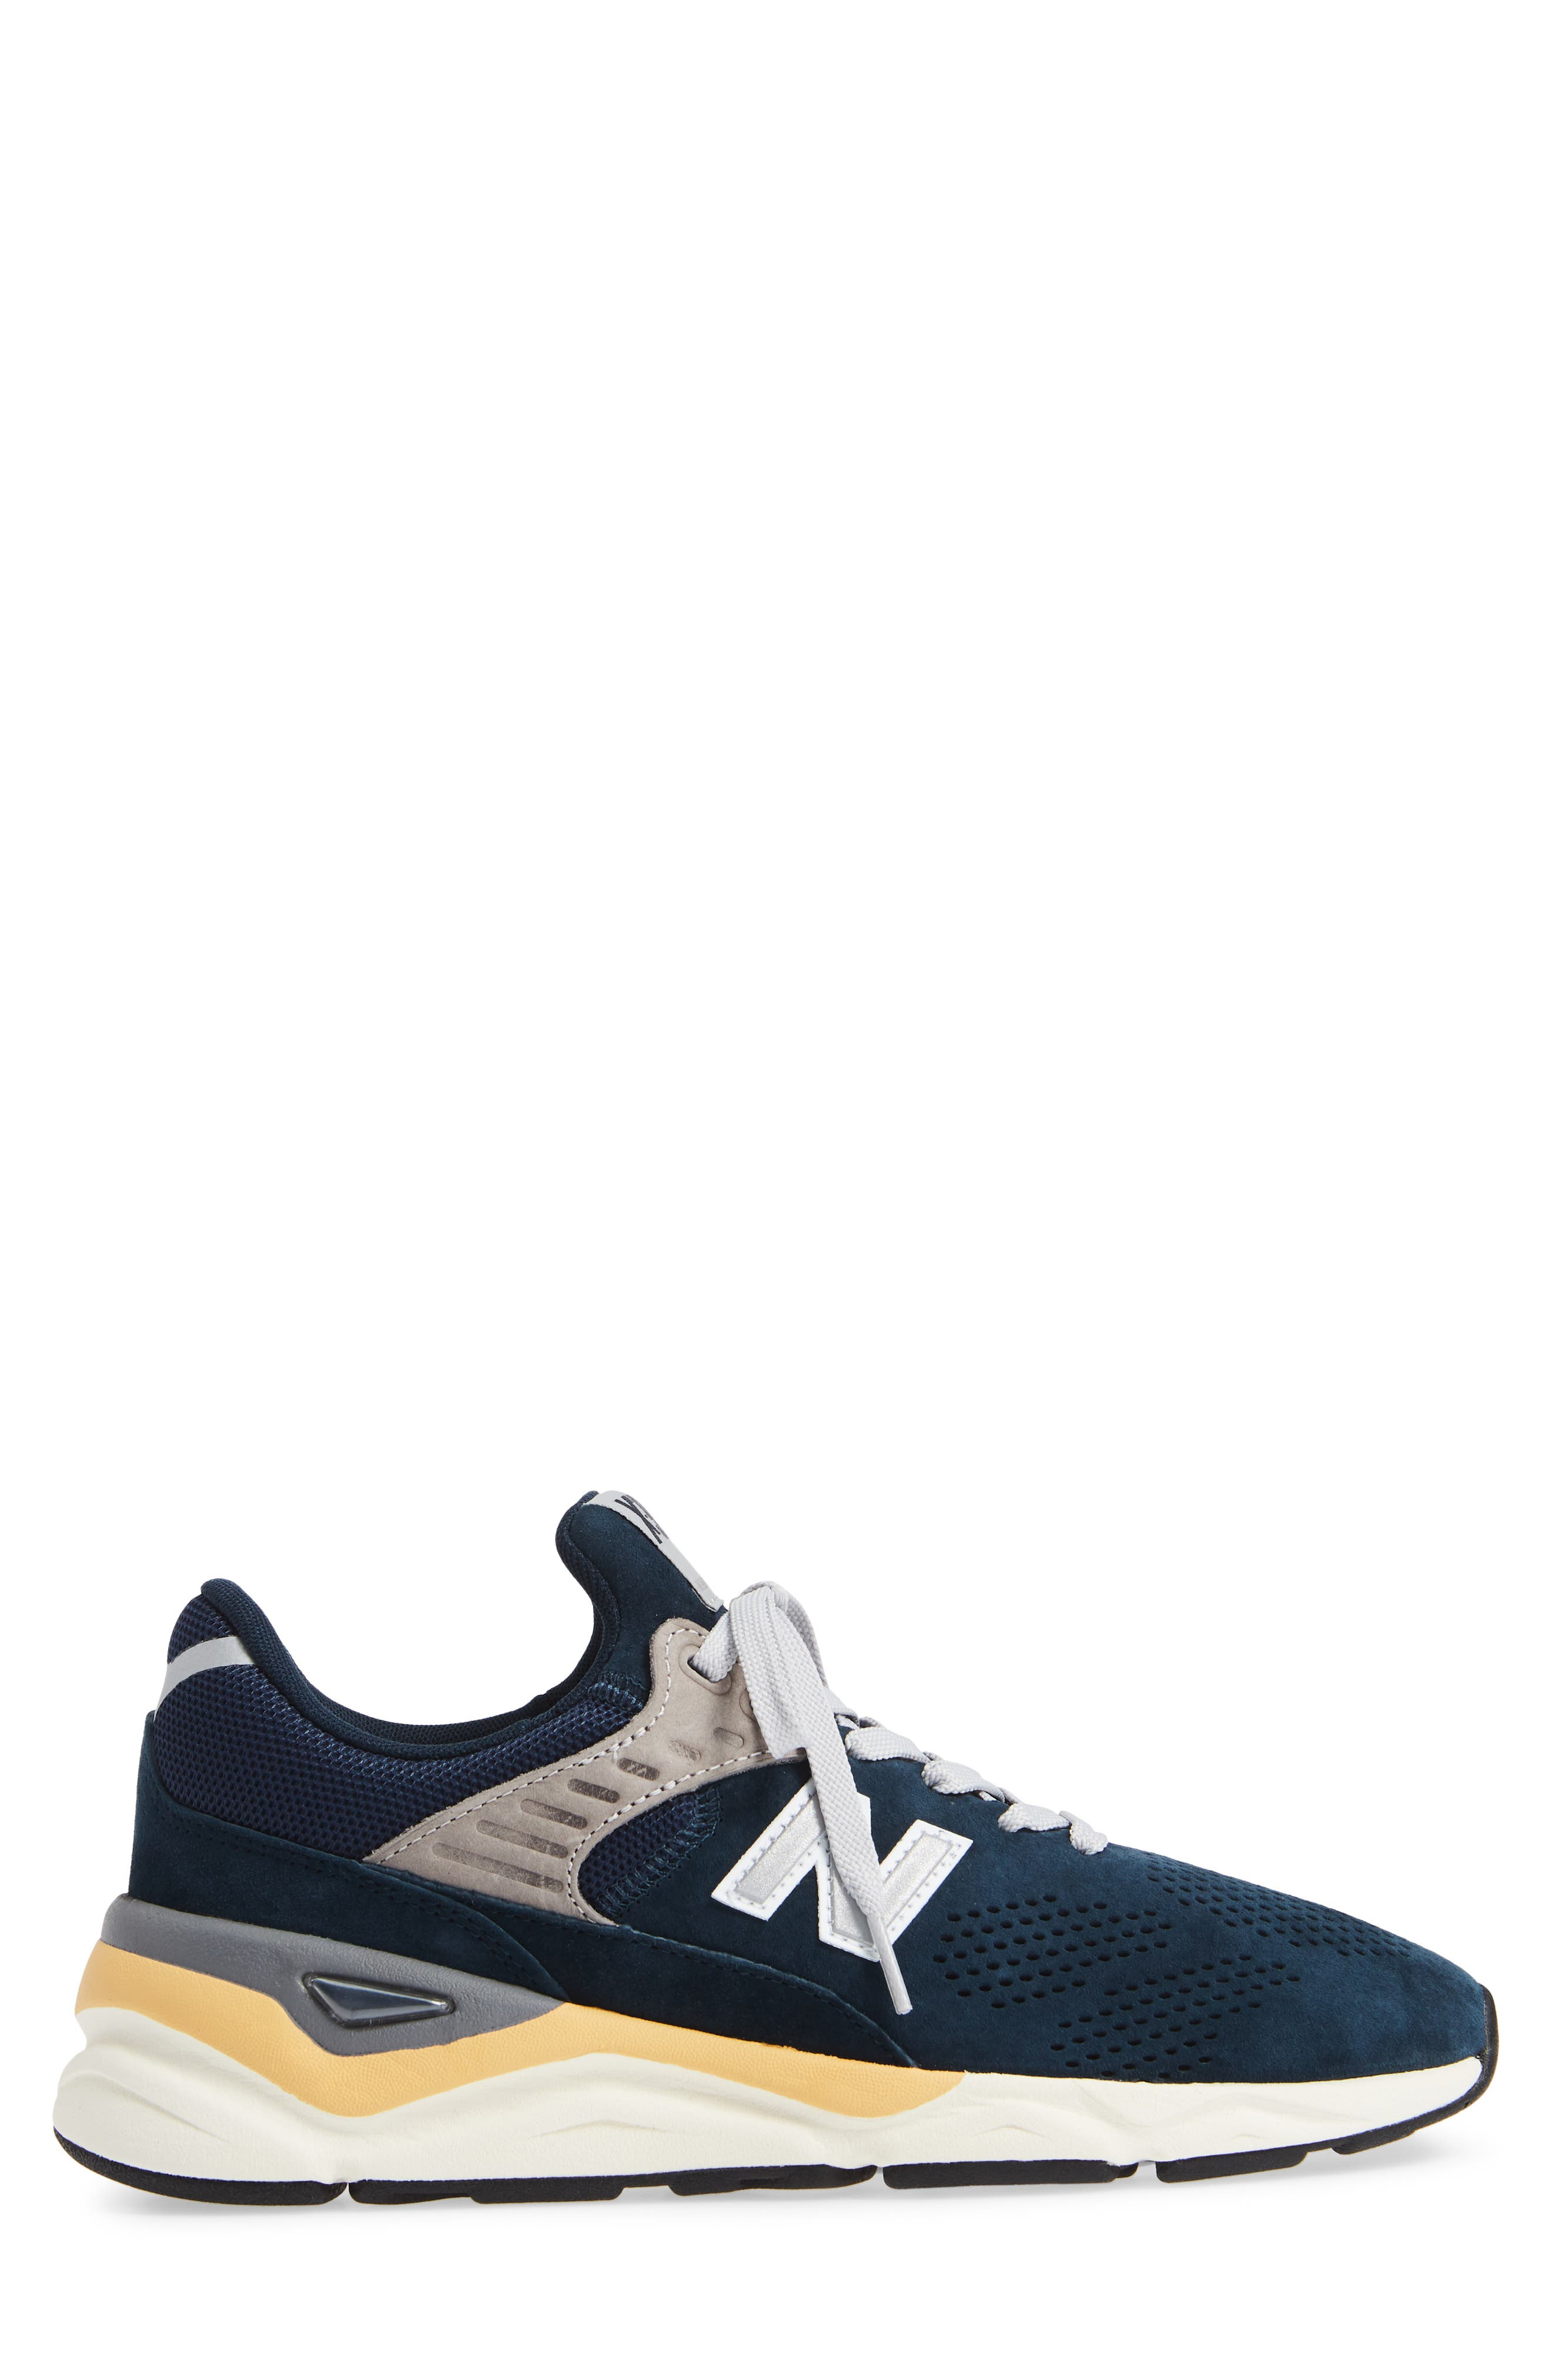 X-90 Leather Sneaker,                             Alternate thumbnail 3, color,                             NAVY SUEDE